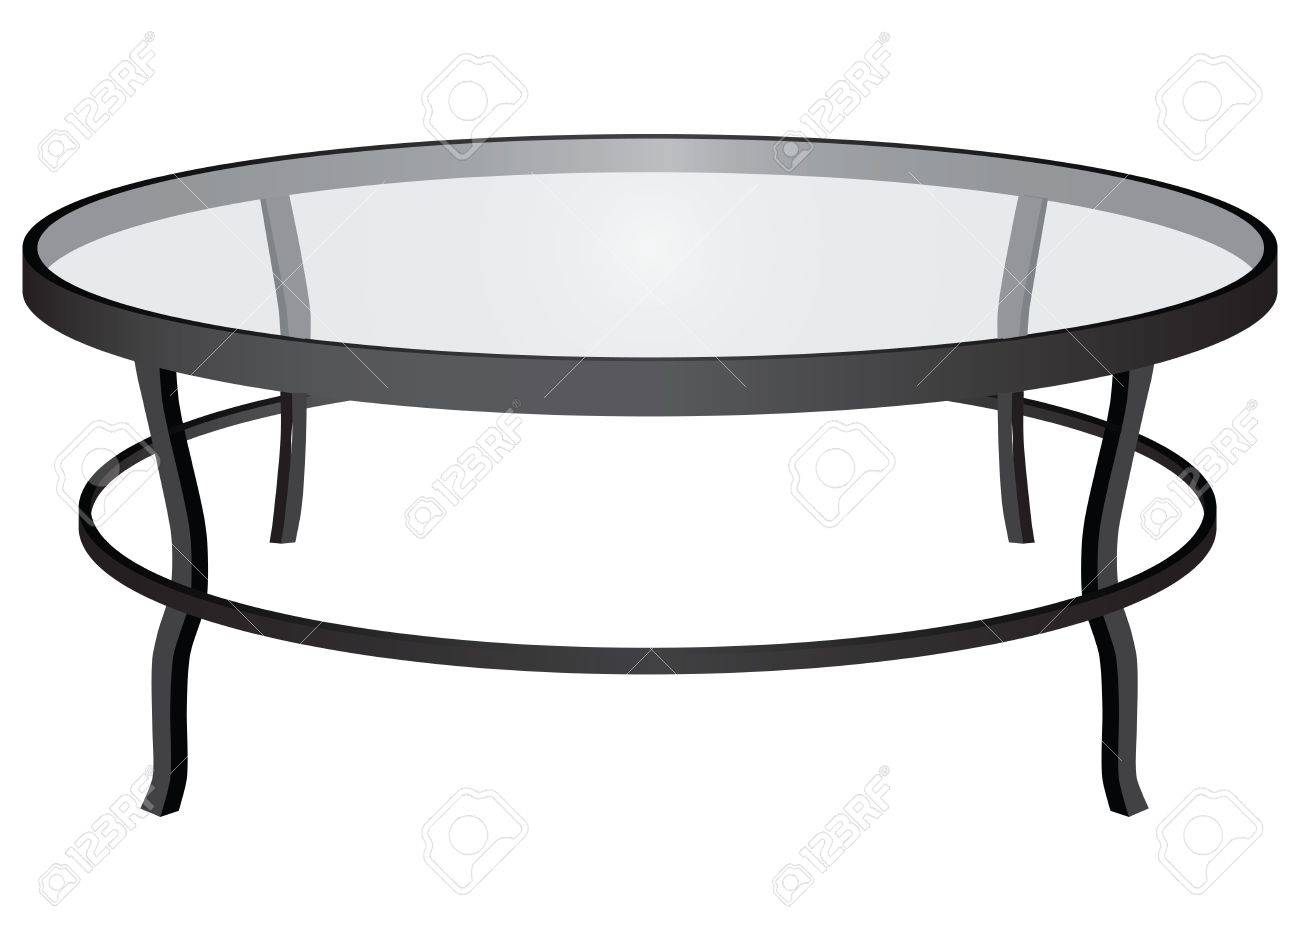 A Round Glass Coffee Table Interior Royalty Free Cliparts Vectors